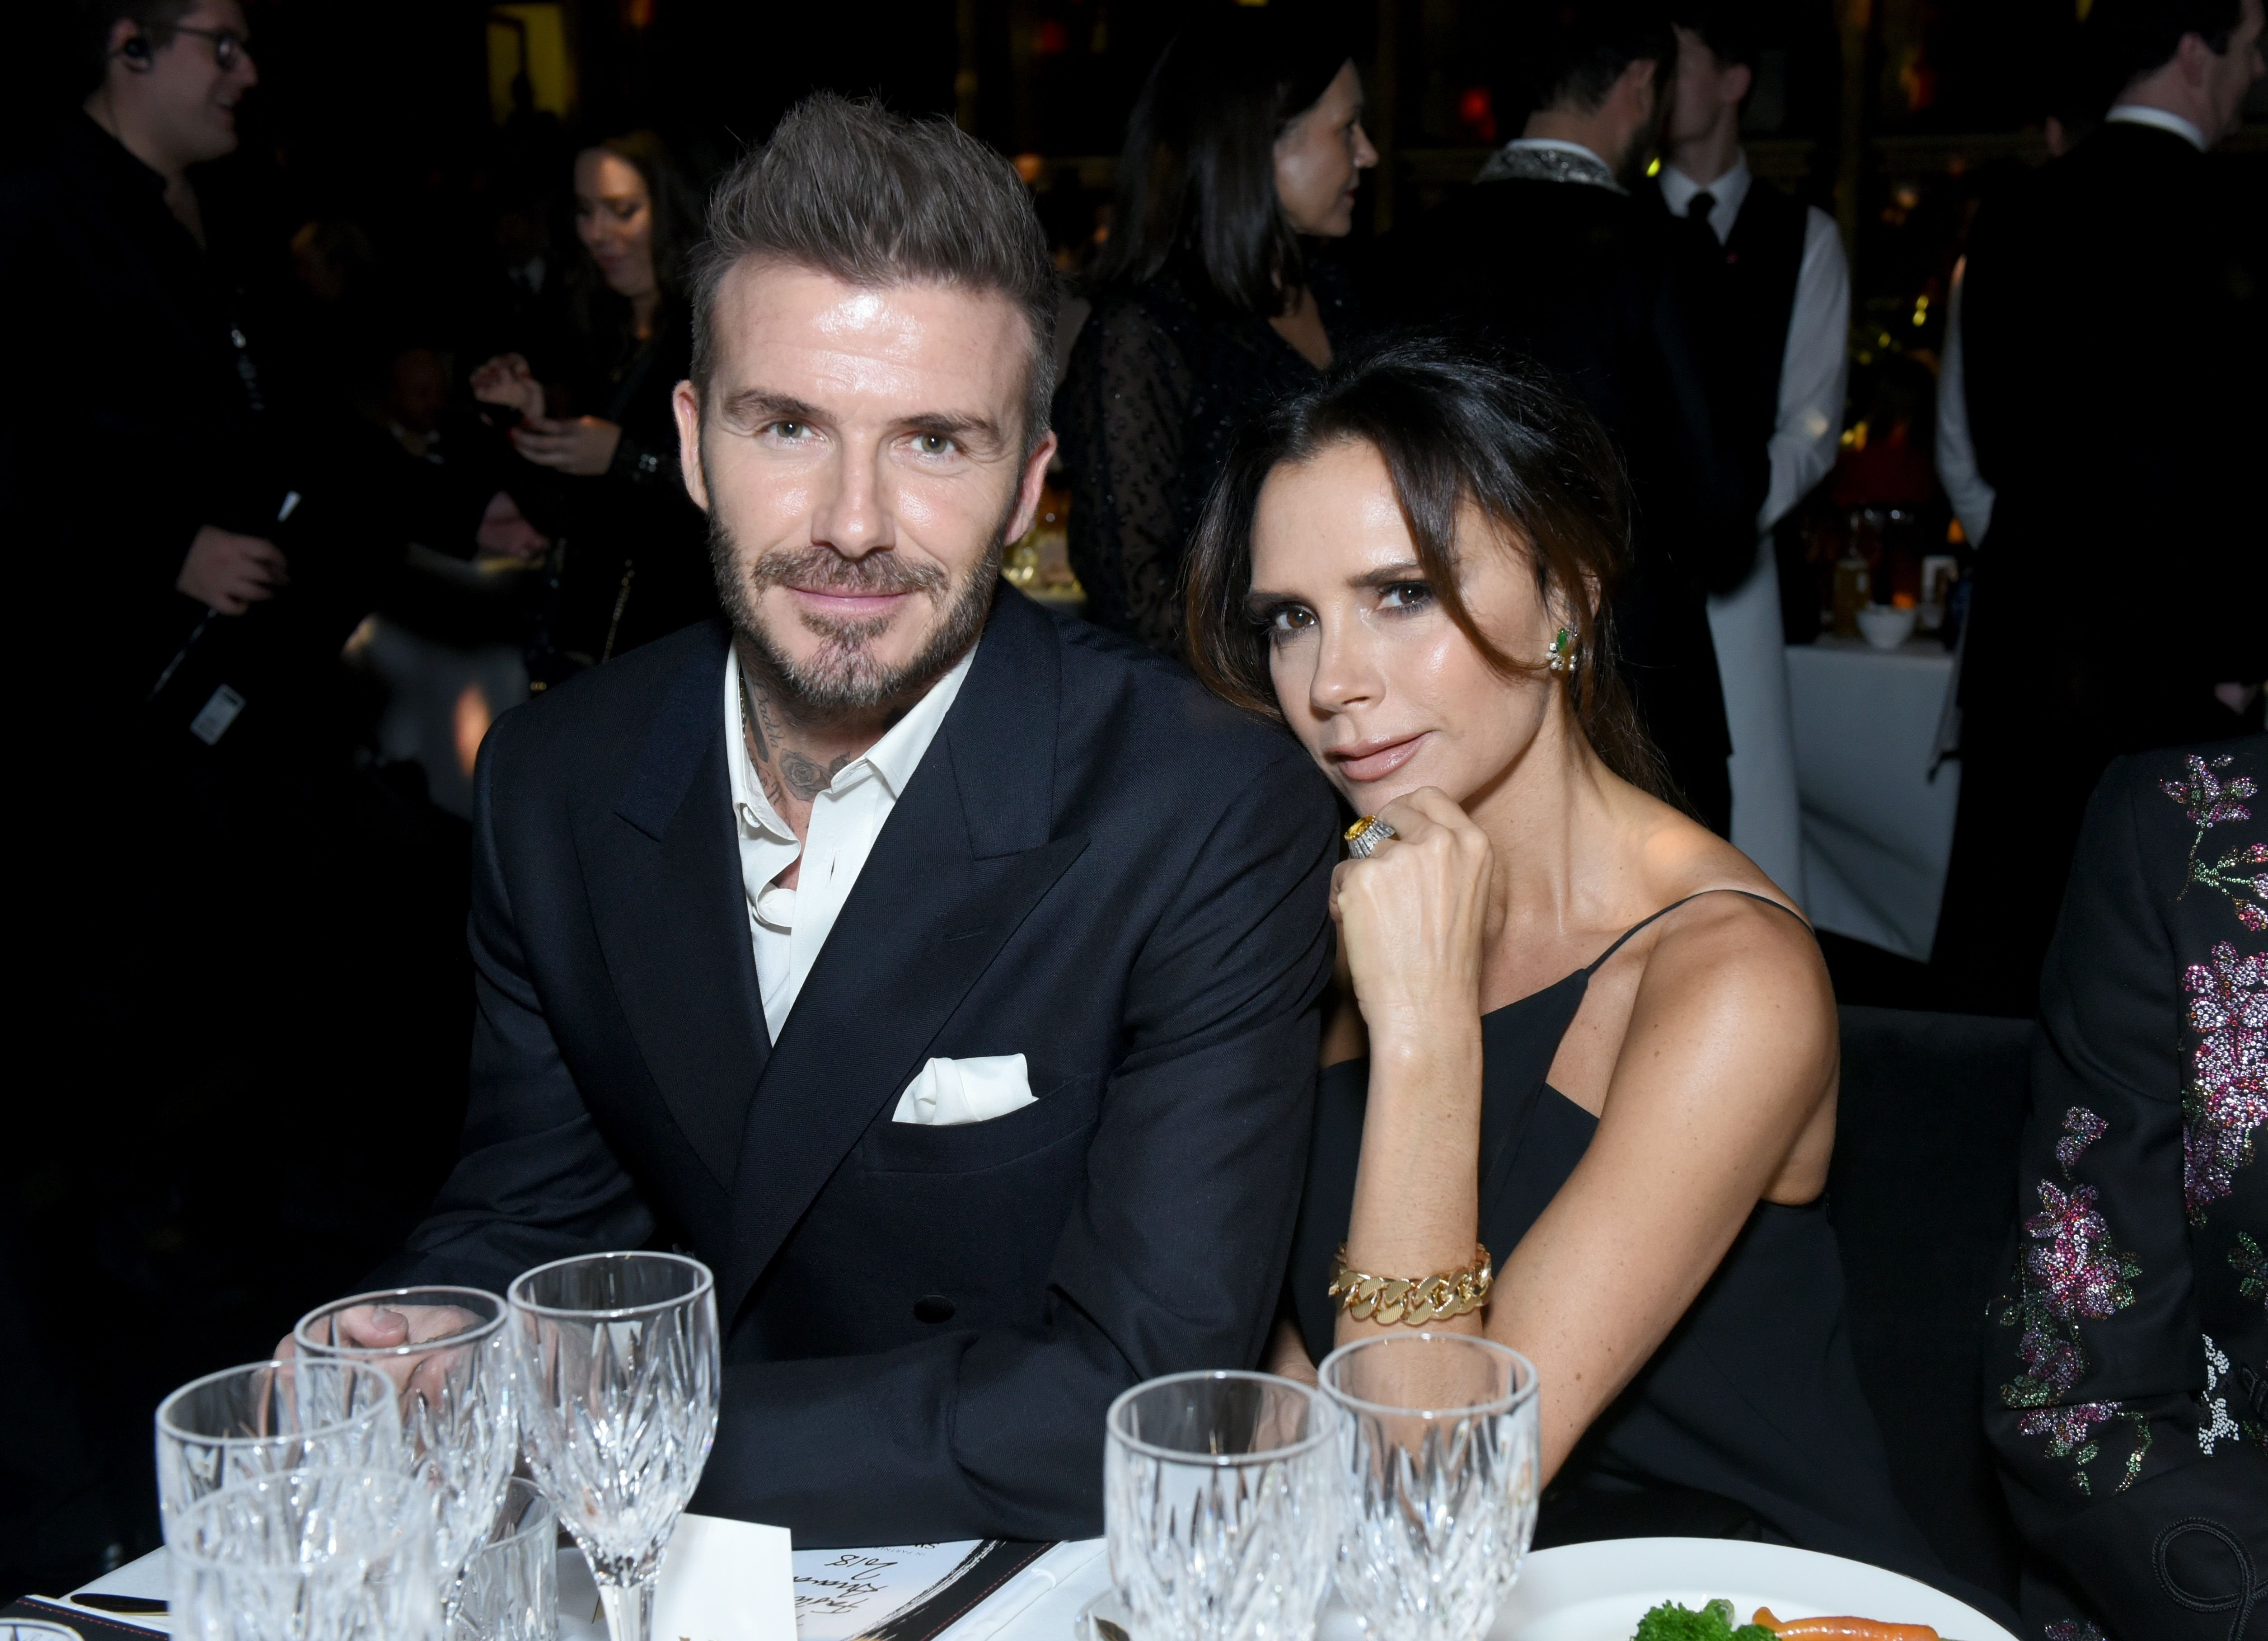 David Beckham and Victoria Beckham attend The Fashion Awards 2018 In Partnership With Swarovski at Royal Albert Hall on December 10, 2018 in London, England. | Source: Getty Images